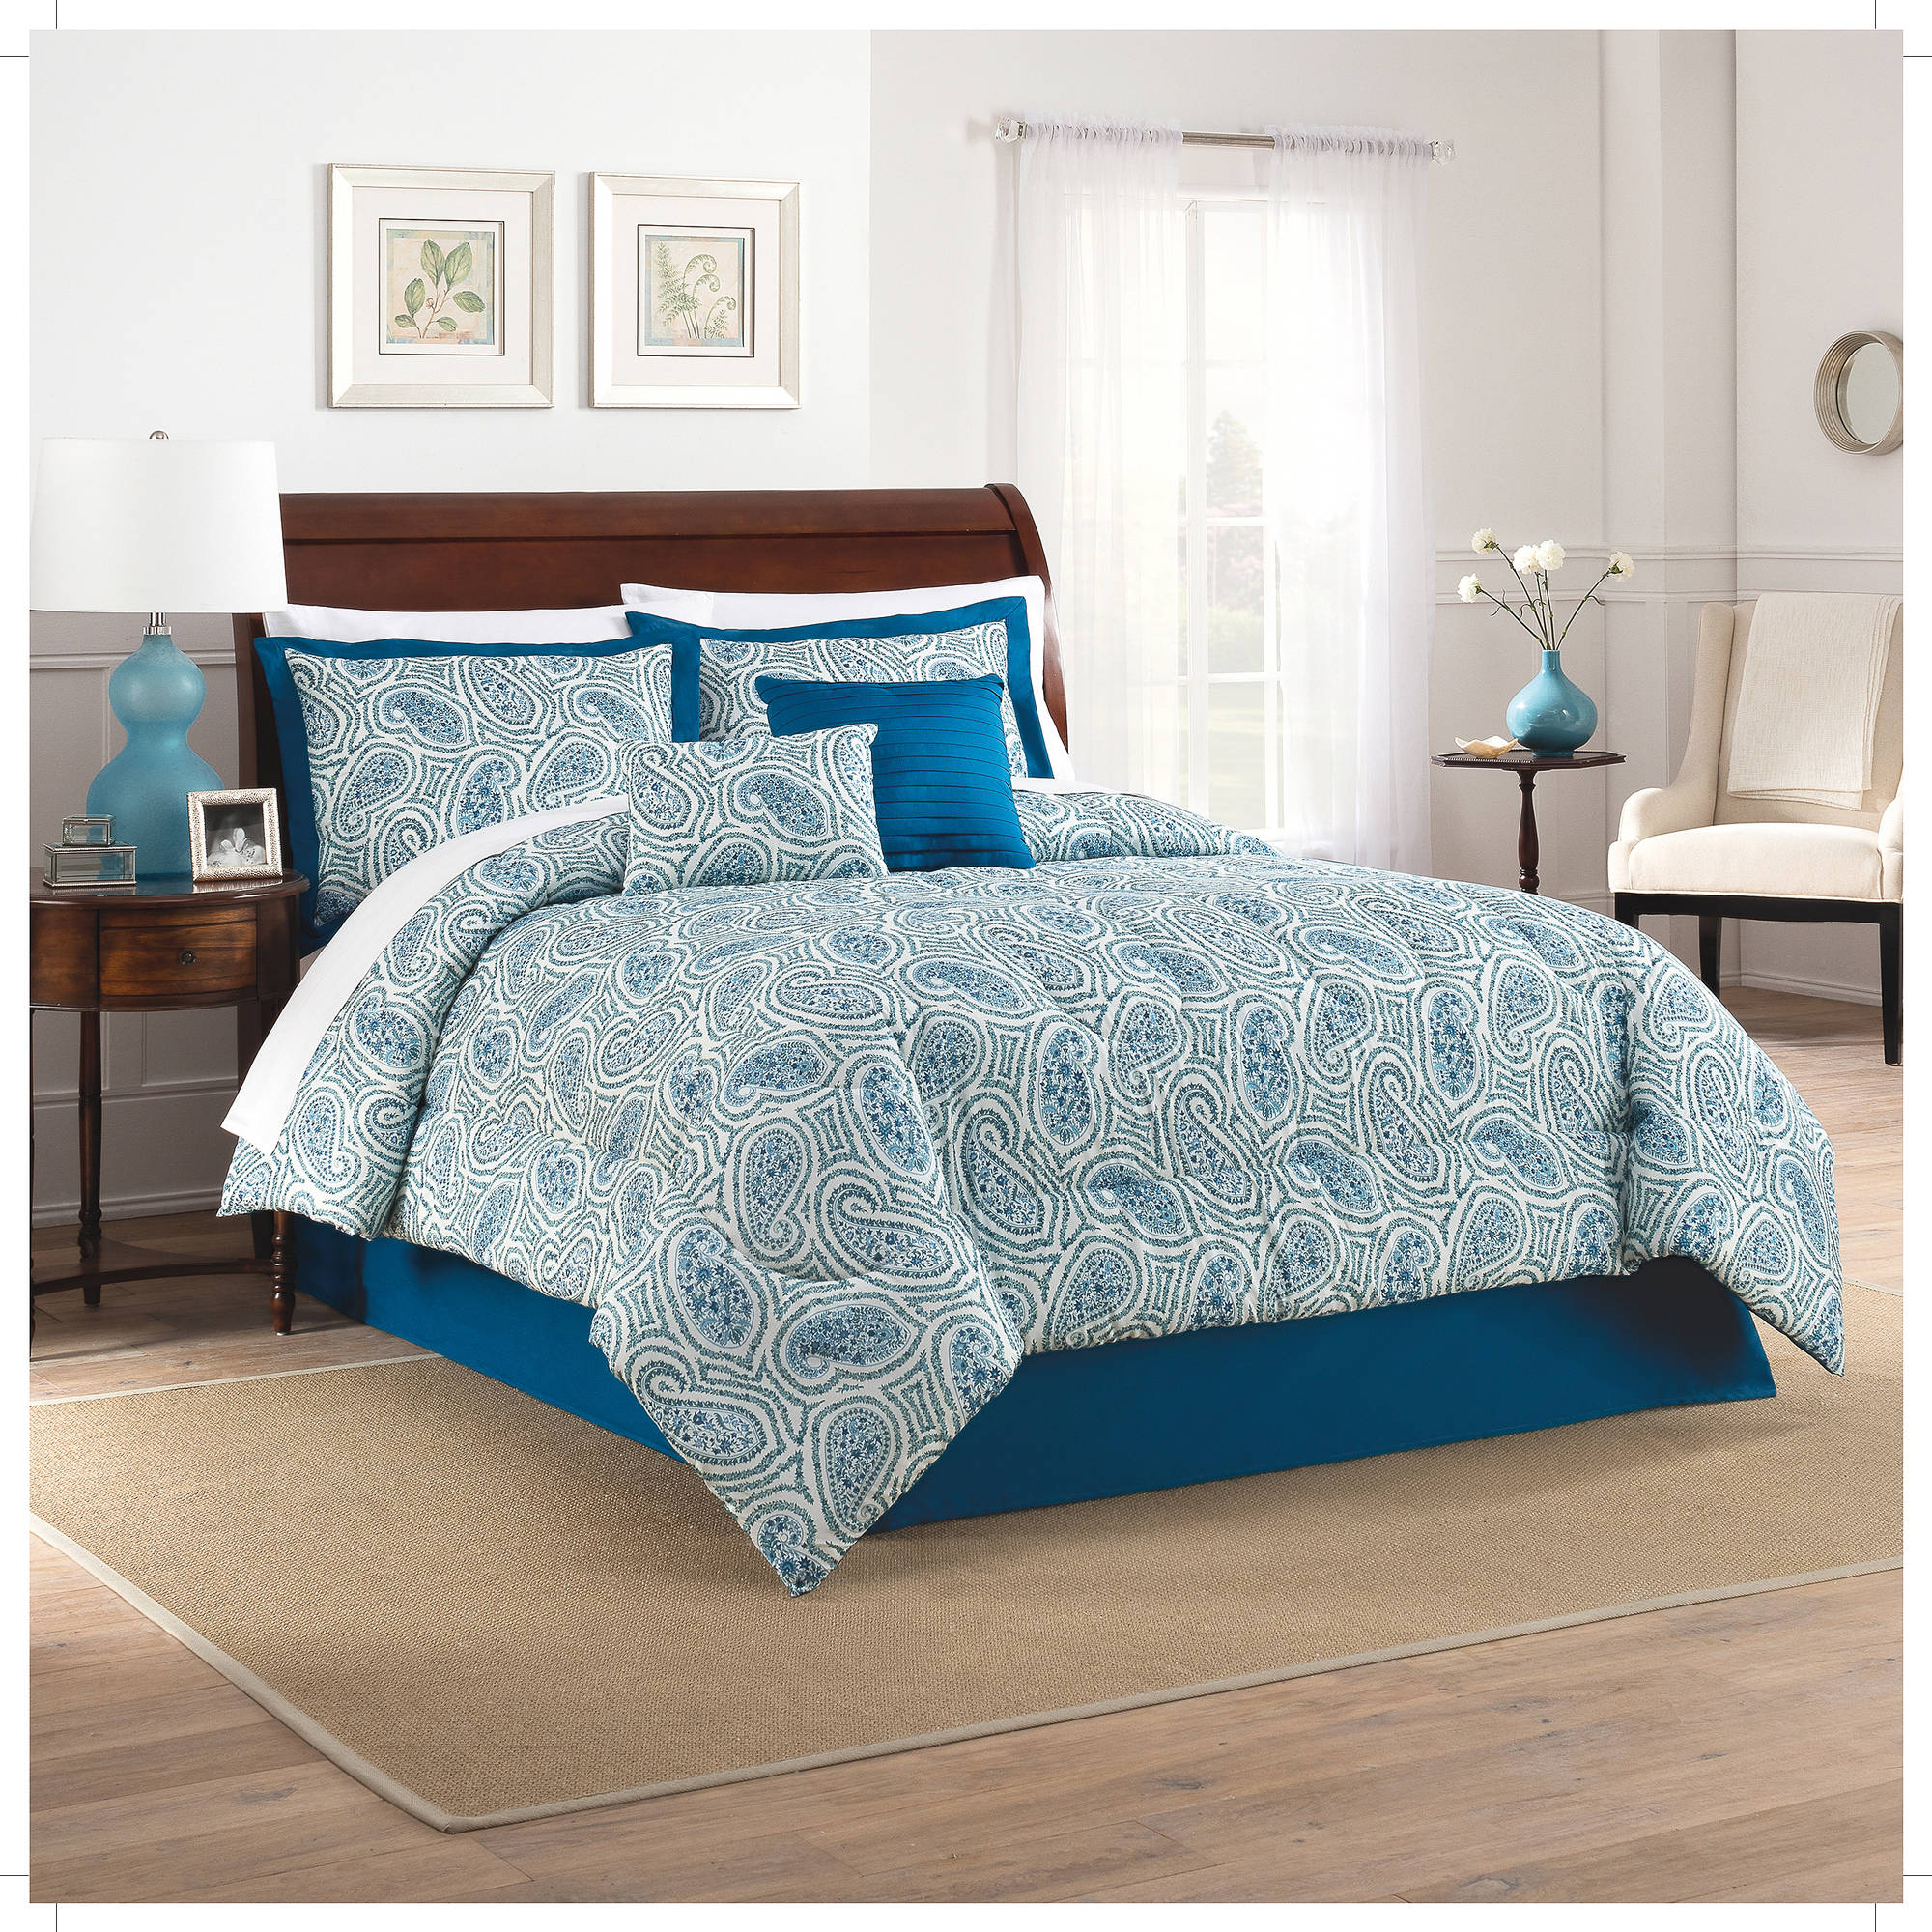 Traditions by Waverly Paisley Proposal 6-Piece Comforter Set